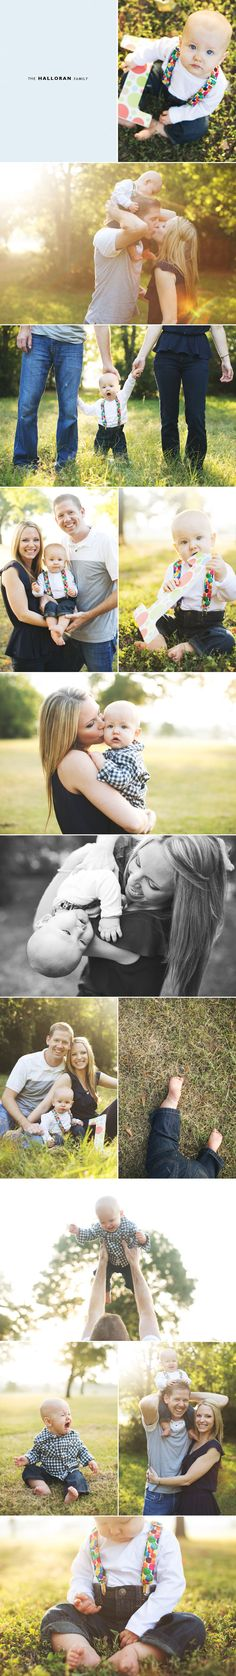 | one year baby | one year photo ideas |